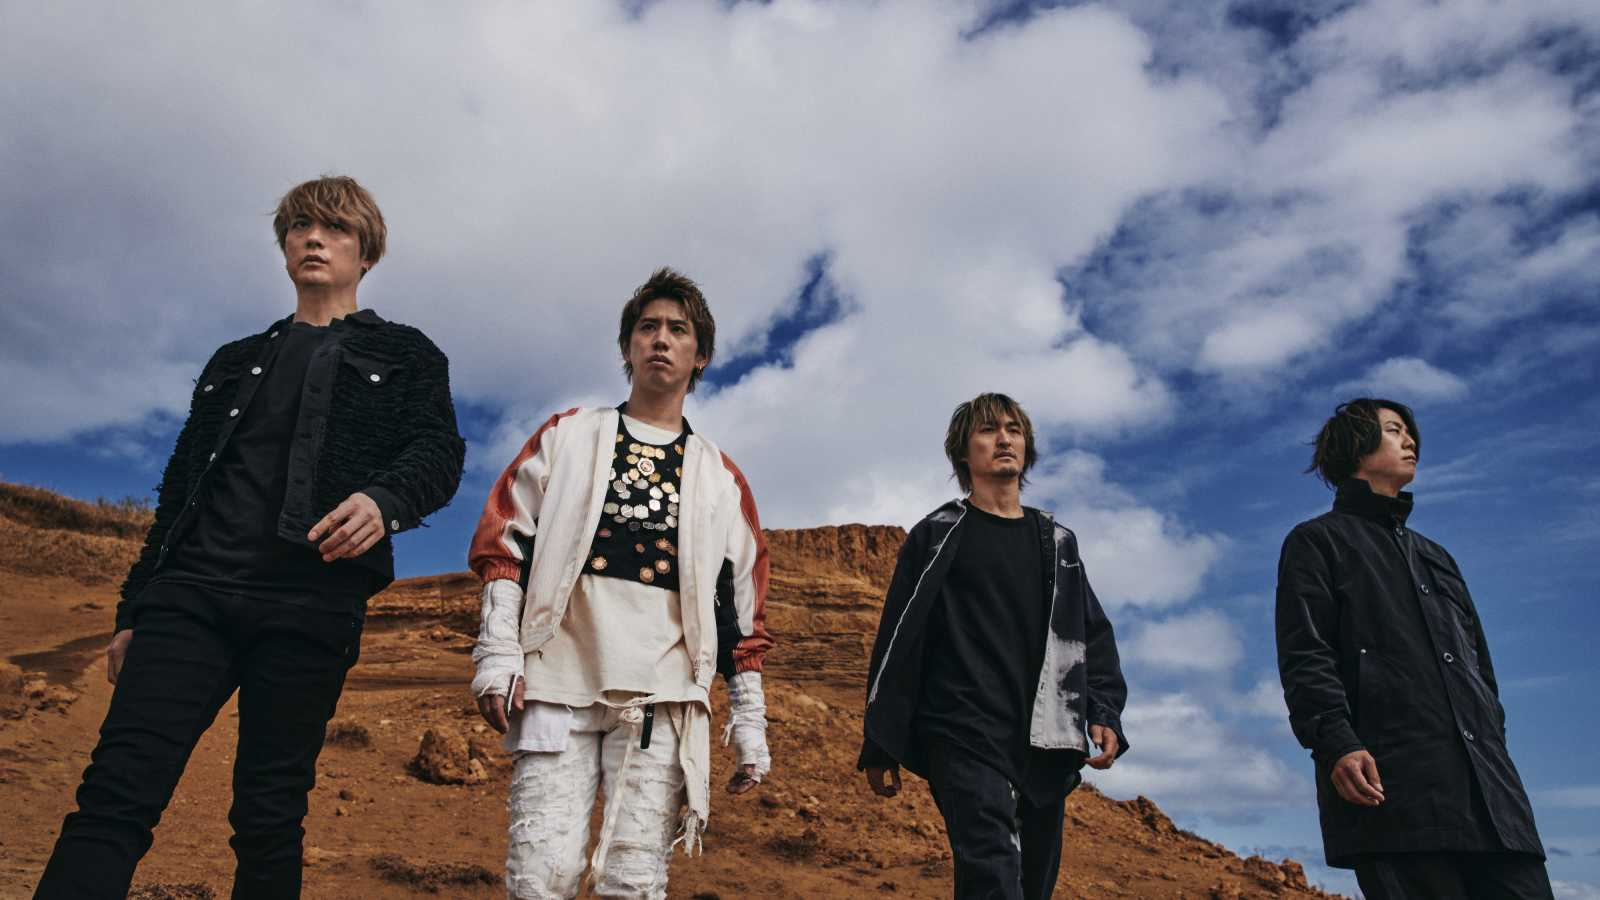 Nowe wydawnictwa ONE OK ROCK © 10969 Inc. All Rights Reserved.